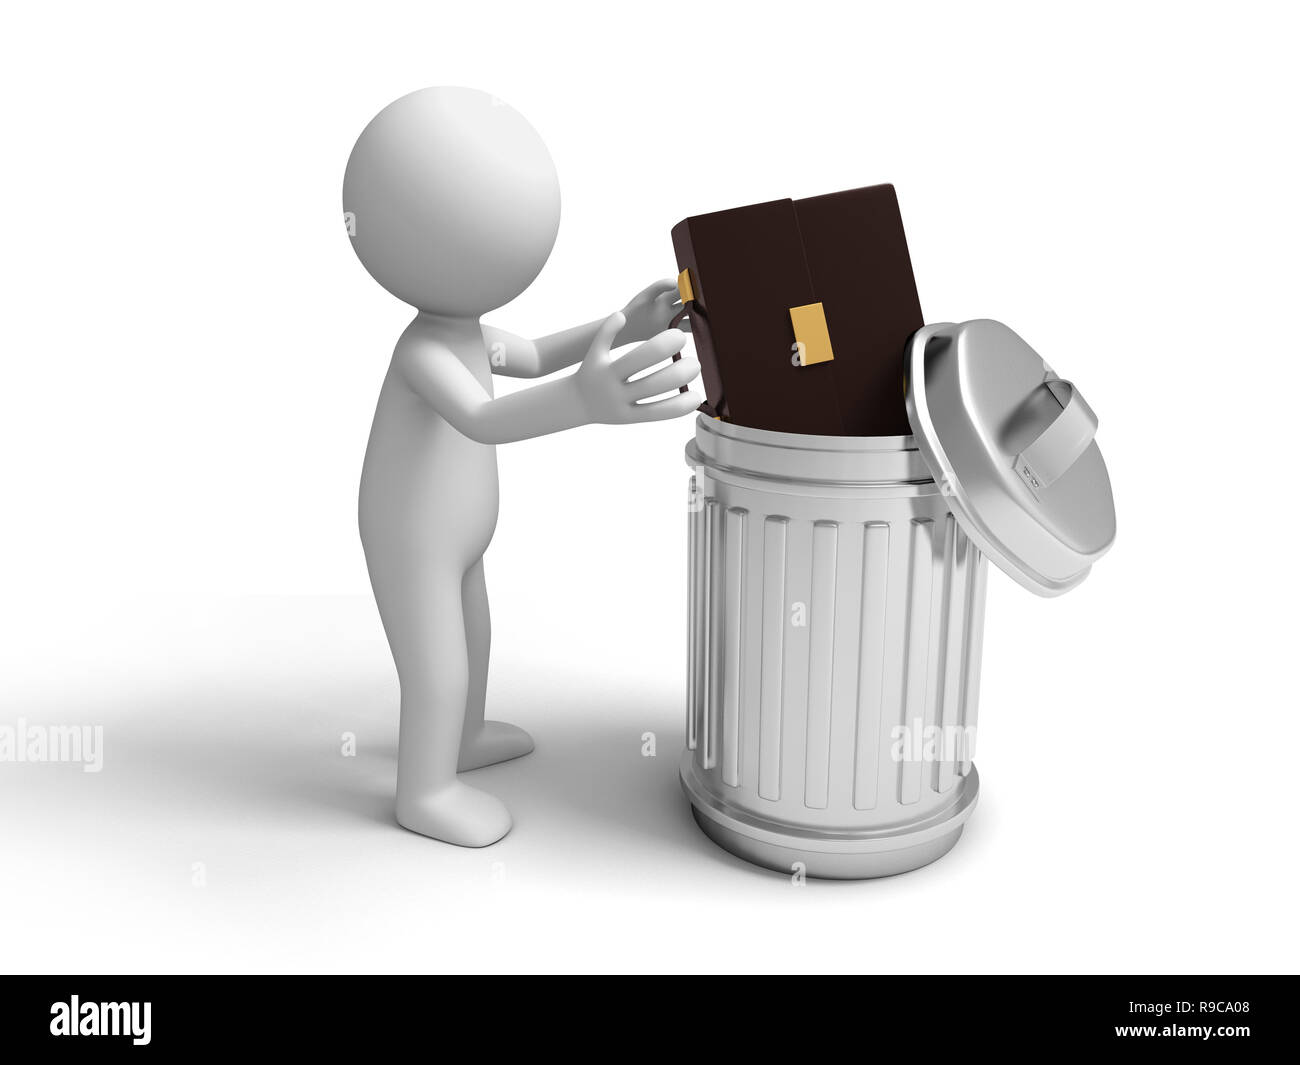 Briefcase and trash can - Stock Image